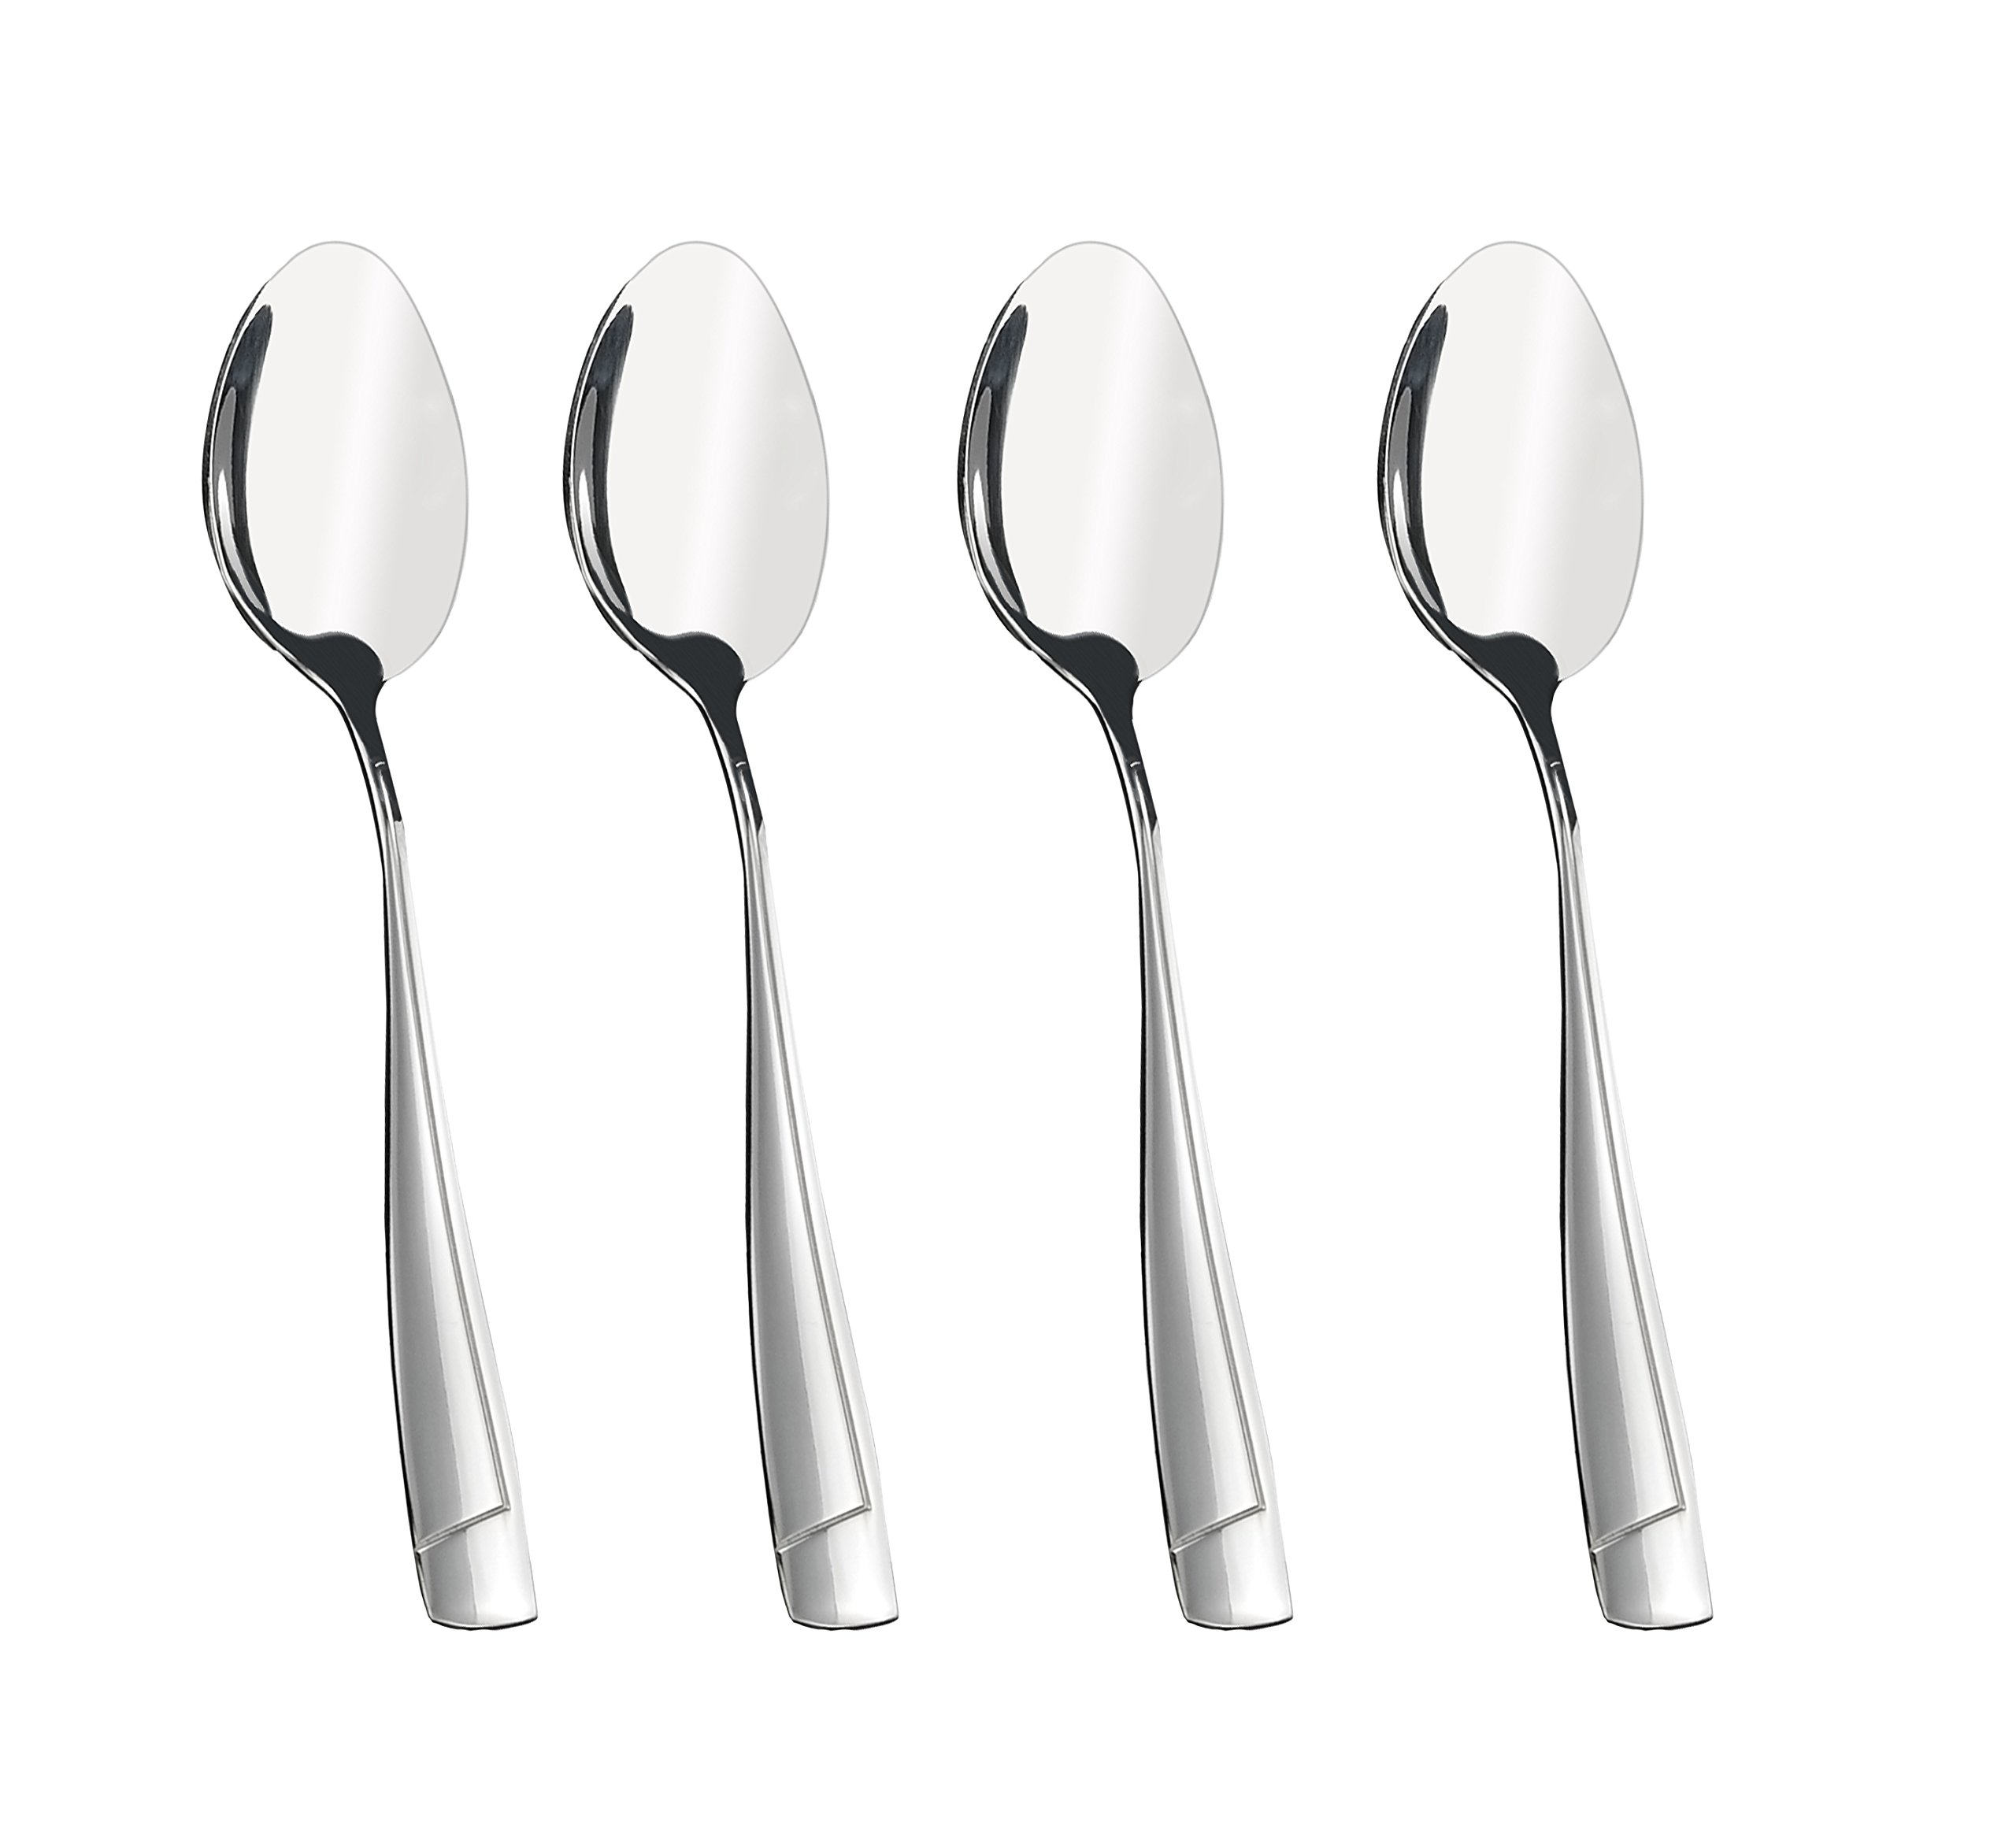 Cand 16-Piece Stainless Steel Dinner Spoons Set